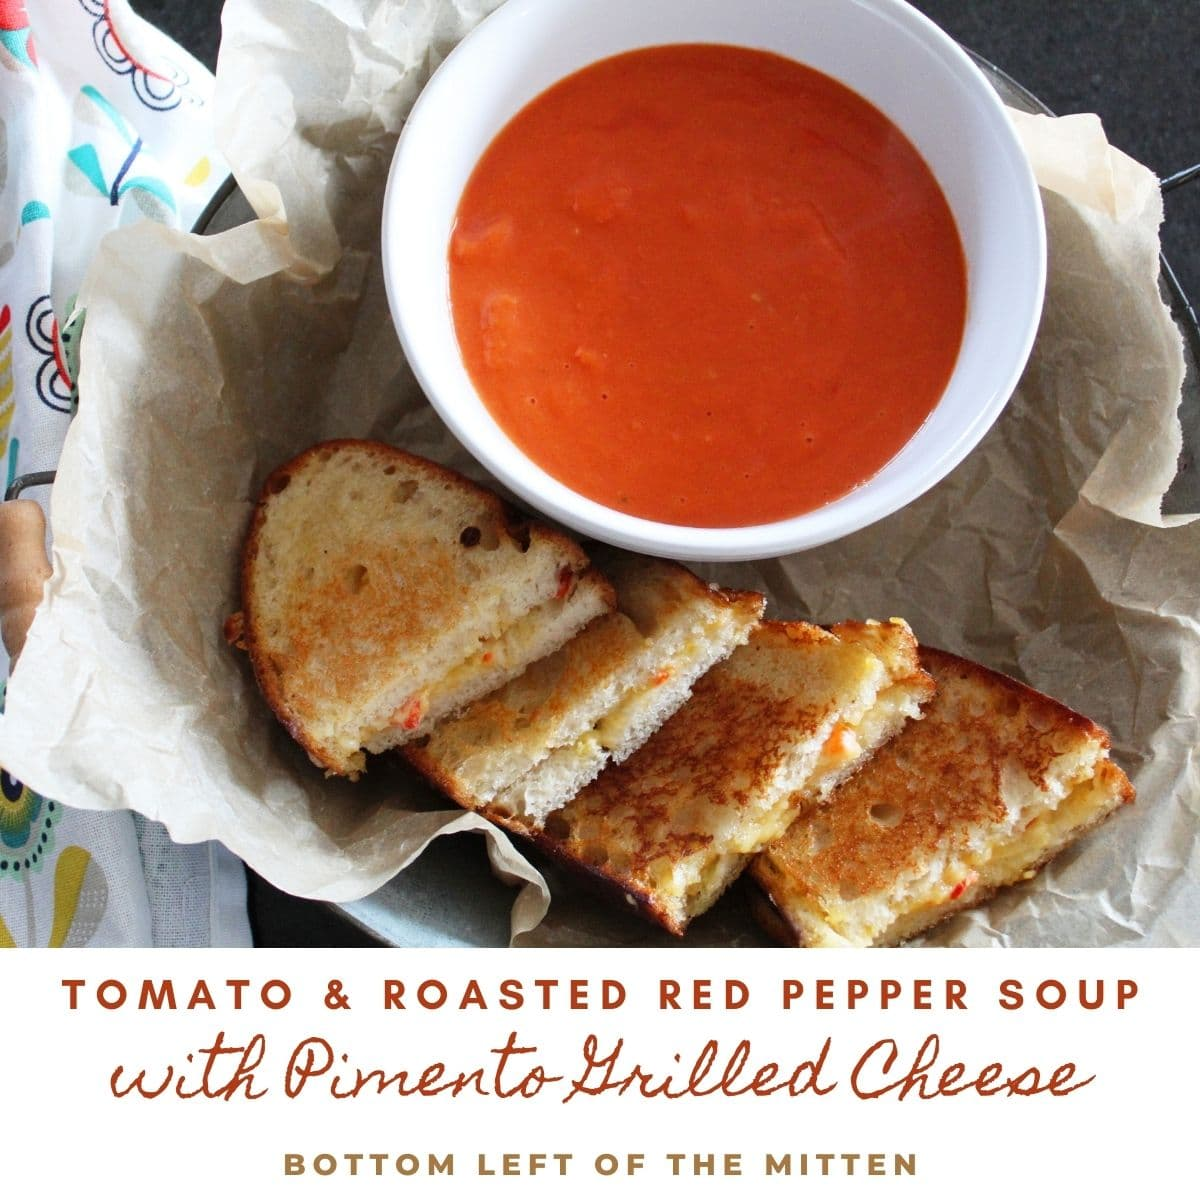 Tomato & Roasted Red Pepper Soup with Pimento Grilled Cheese with descriptive text on it